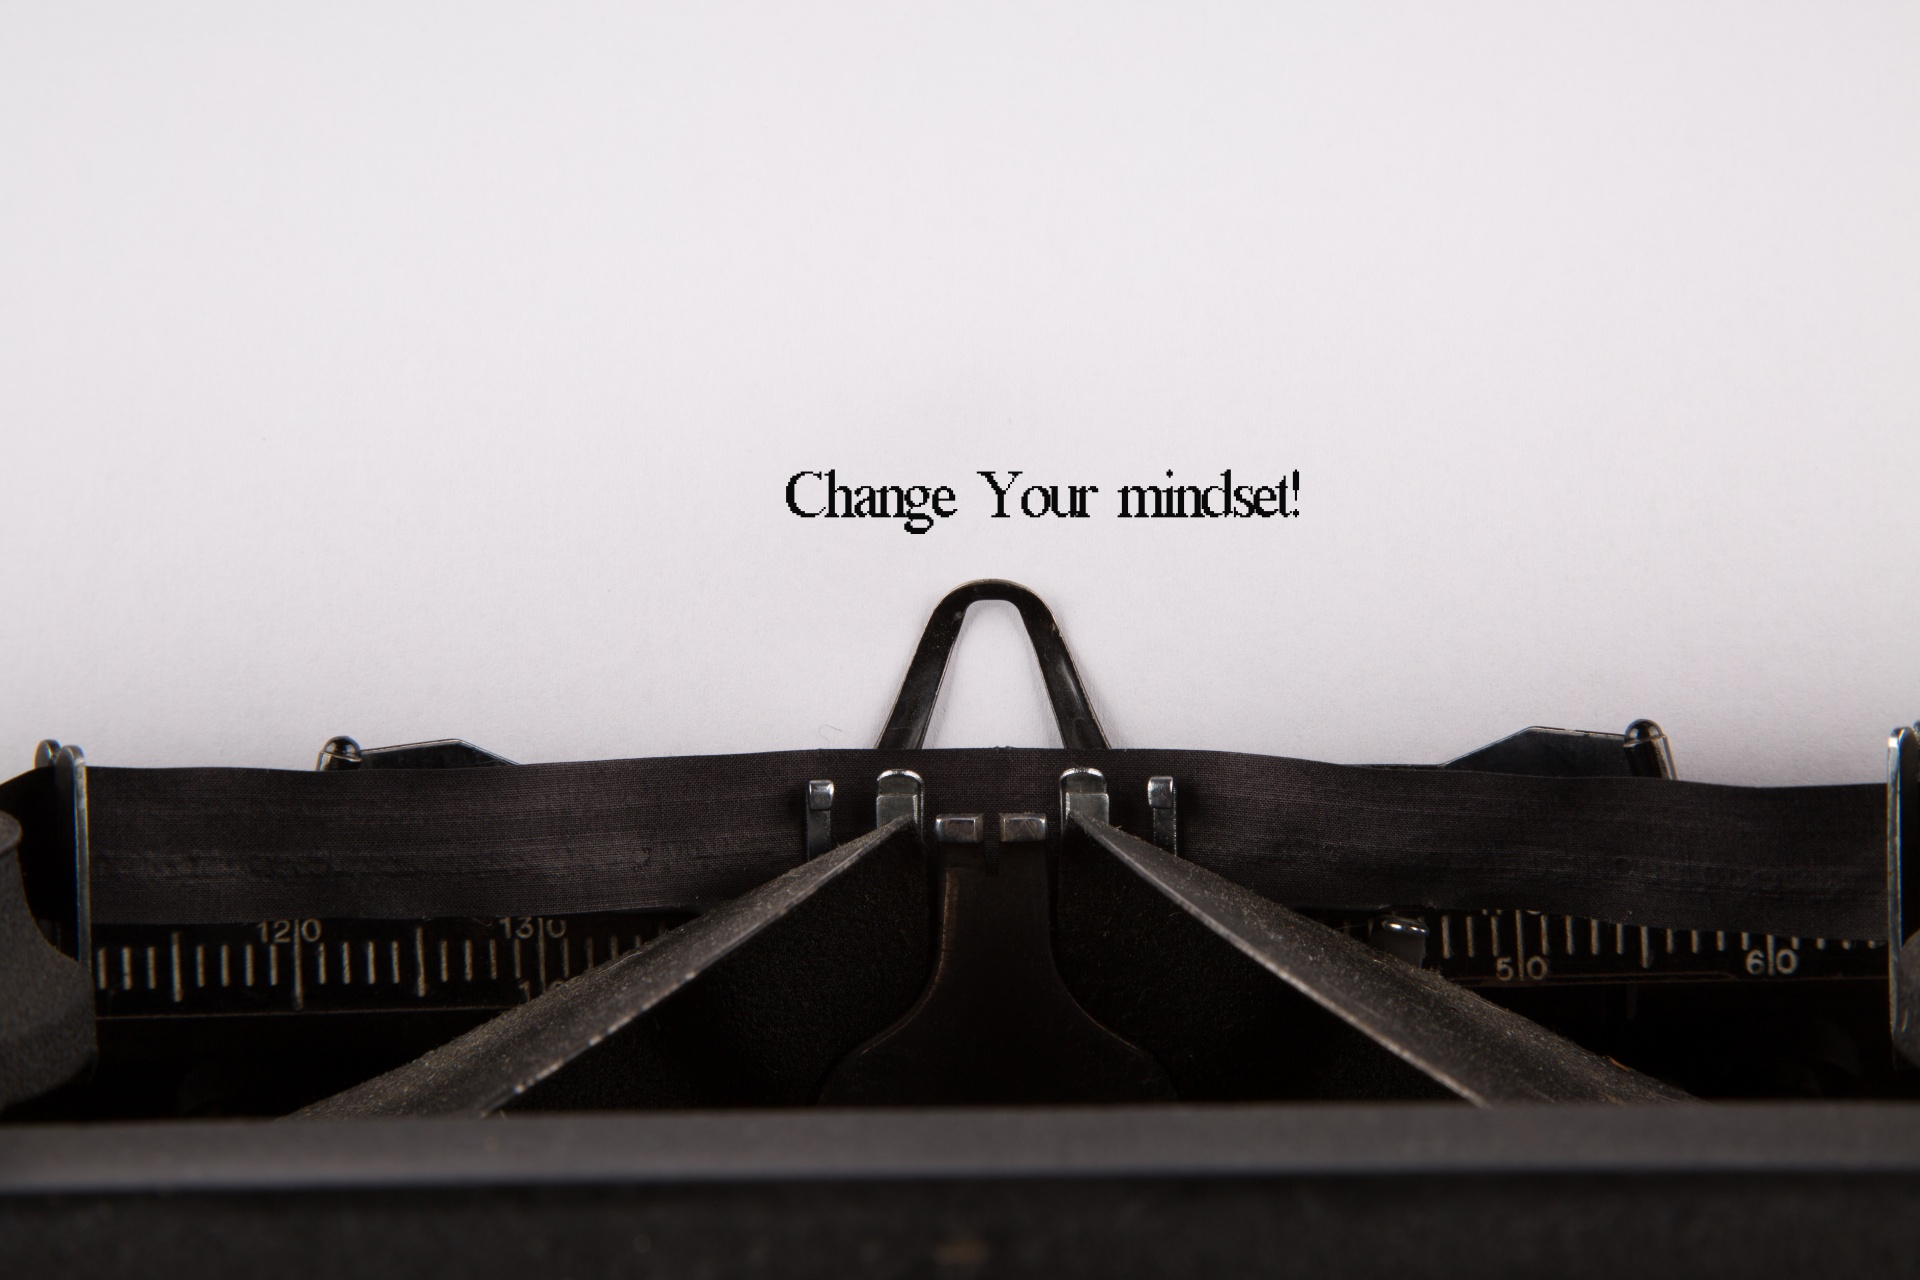 Change Your Mindset The Joy Of Wellbeing